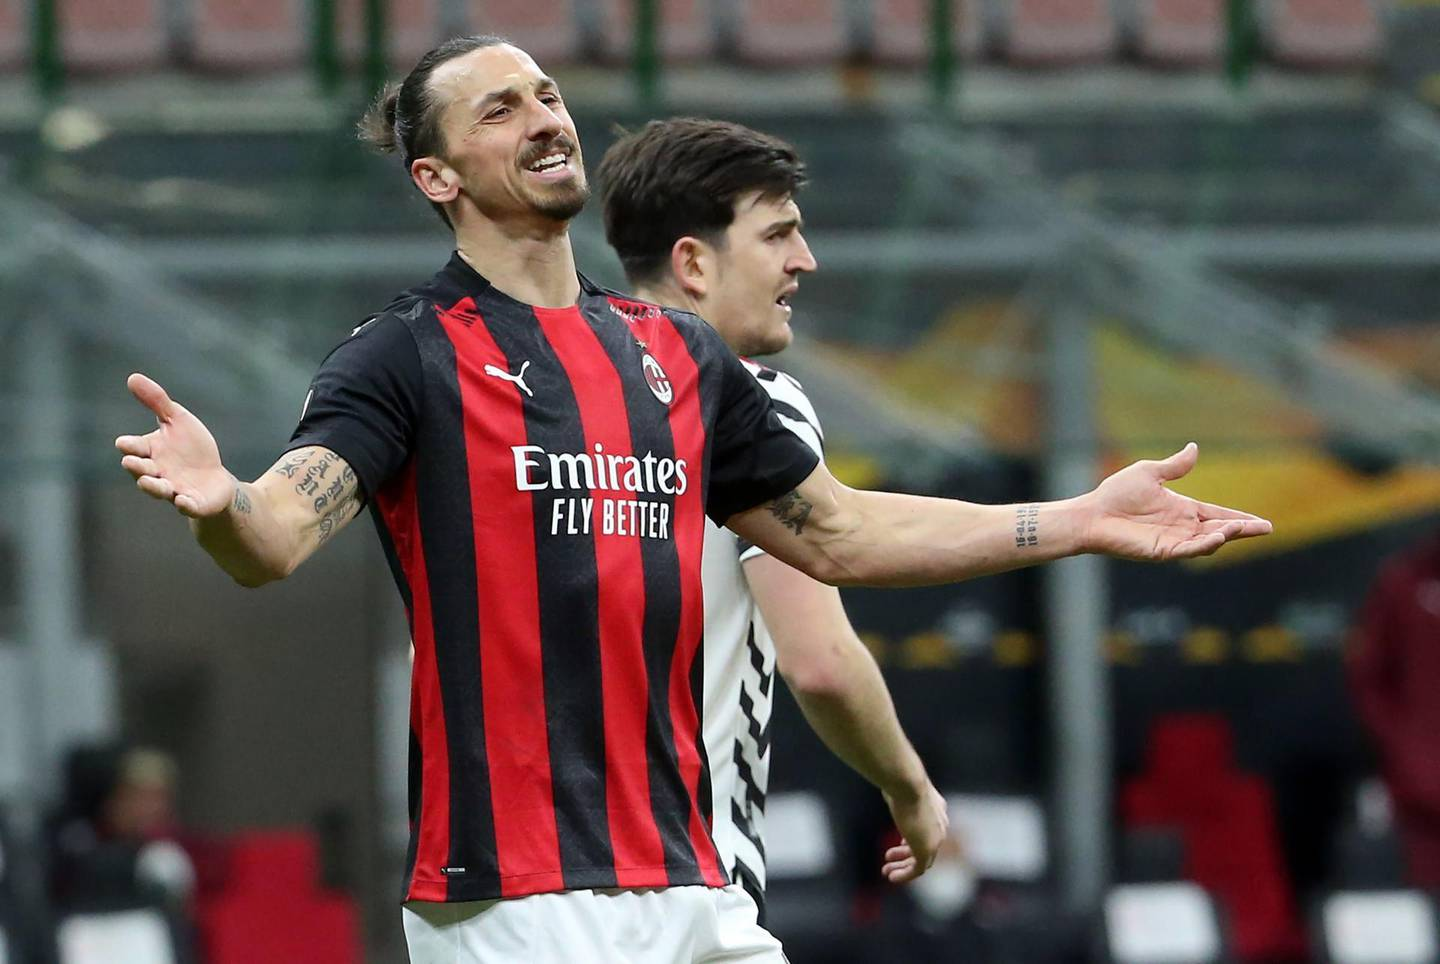 epa09083042 AC Milan's Zlatan Ibrahimovic reacts during the UEFA Europa League round of 16 second leg soccer match between AC Milan and Manchester United at Giuseppe Meazza stadium in Milan, Italy, 18 March  2021.  EPA/MATTEO BAZZI